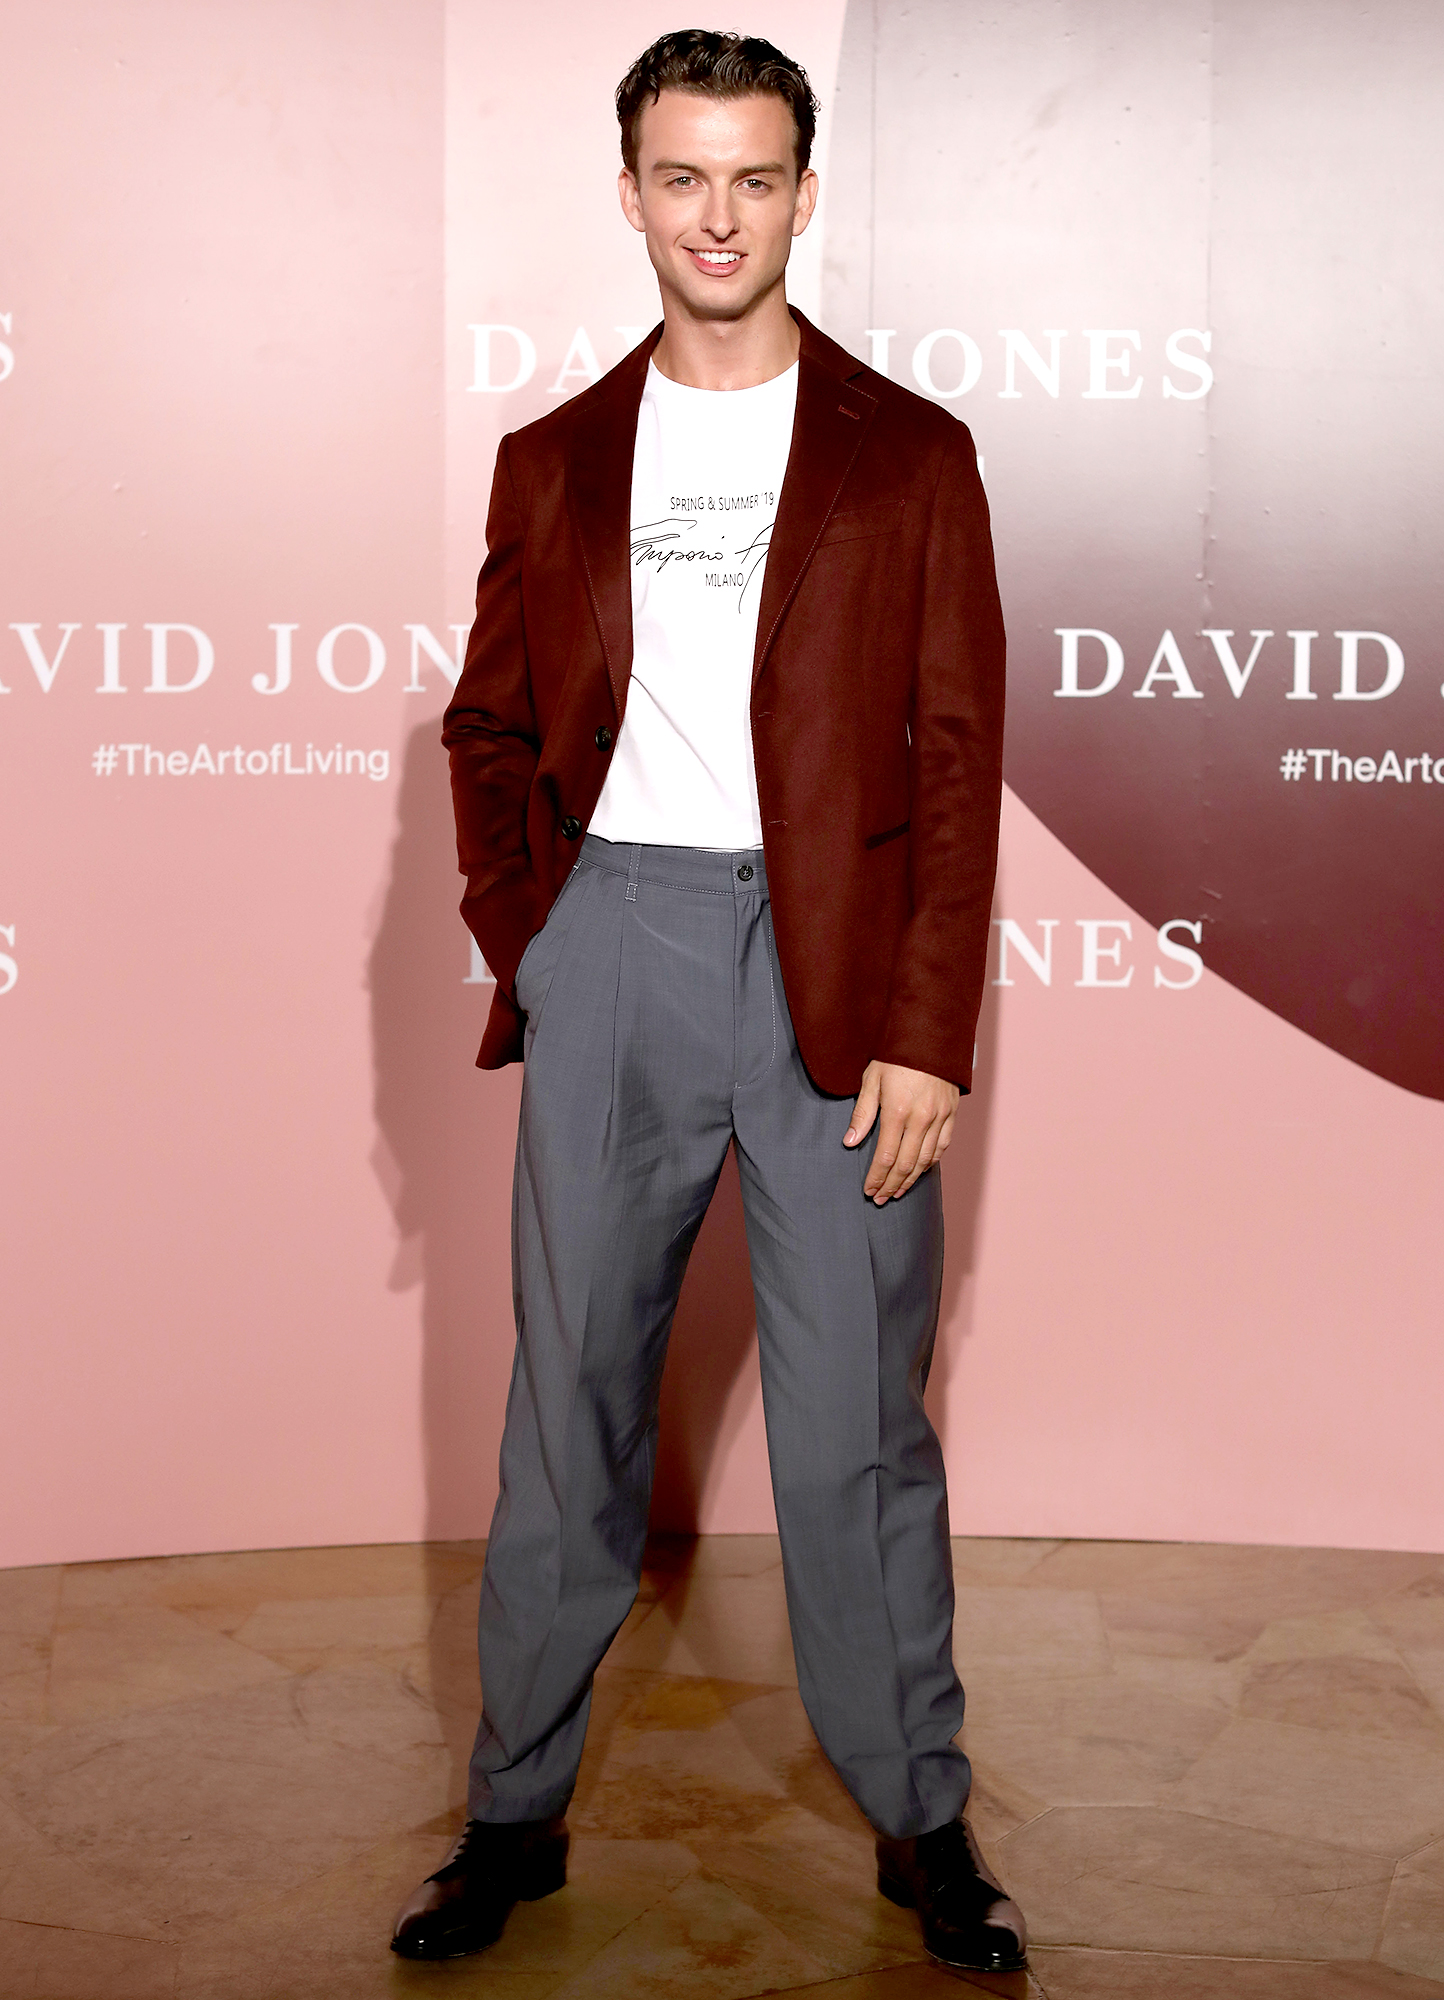 Cameron-Robbie-margot-brother-runway-debut - Cameron Robbie attends the David Jones AW19 Season Launch 'The Art of Living' at The Museum of Old and New Art (MONA) on February 5, 2019 in Hobart, Australia.